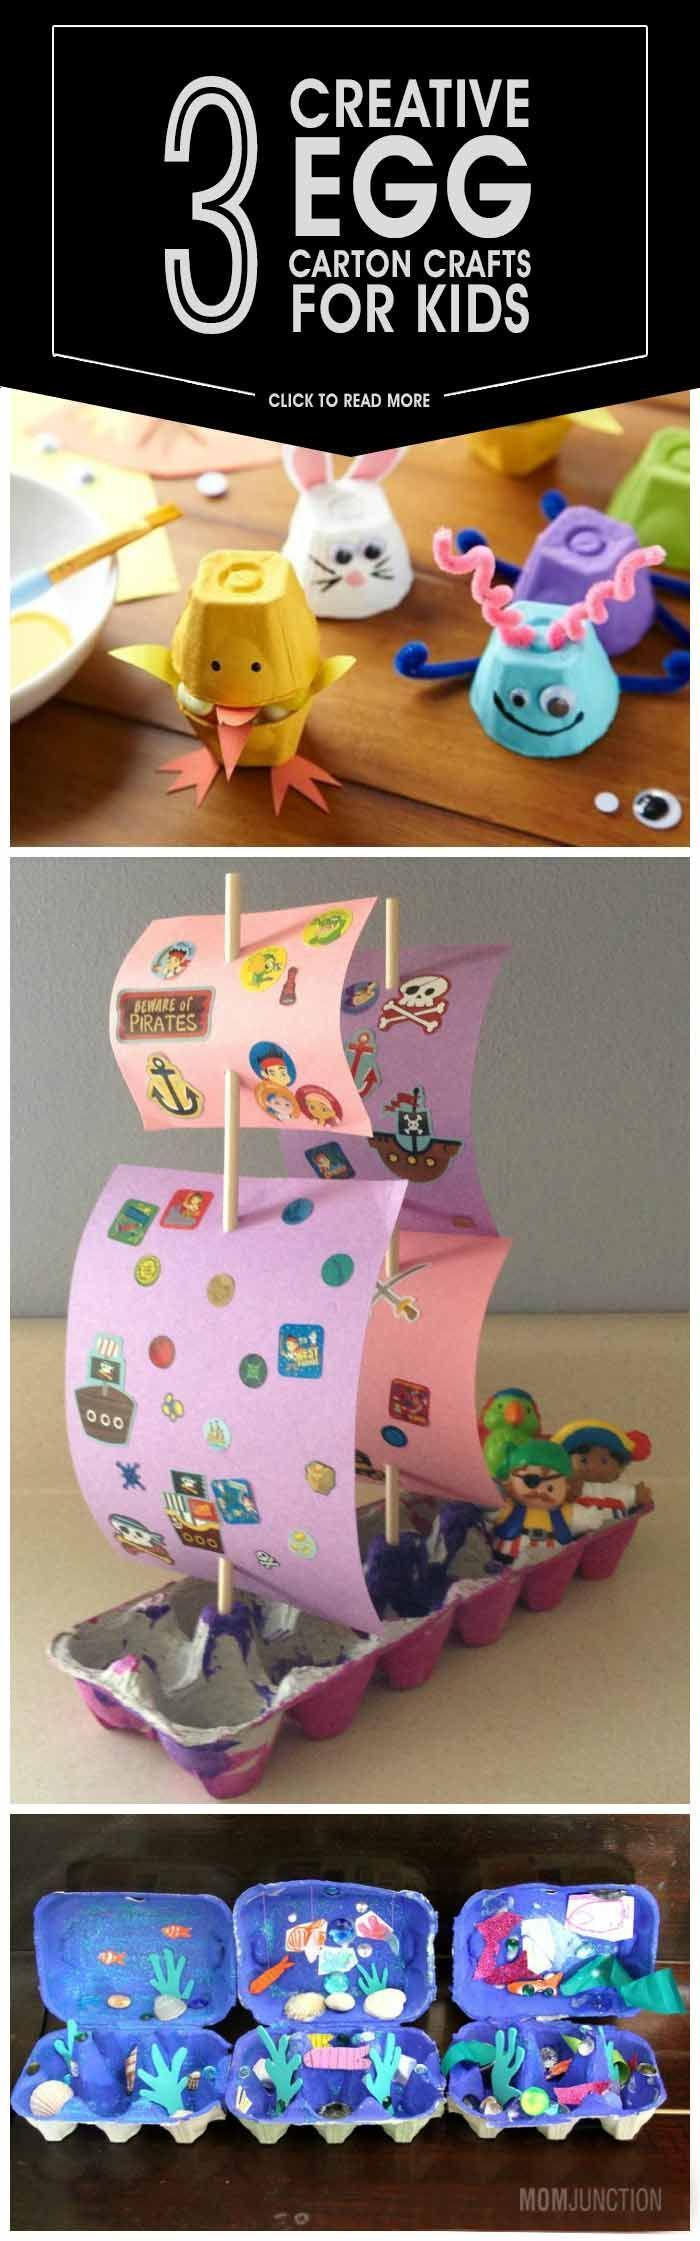 Here Are 3 Very Easy To Make And Beautiful To Look At #Egg Carton #Crafts For Kids, That Will Surely Bring Out Your #Child's #Creativity.